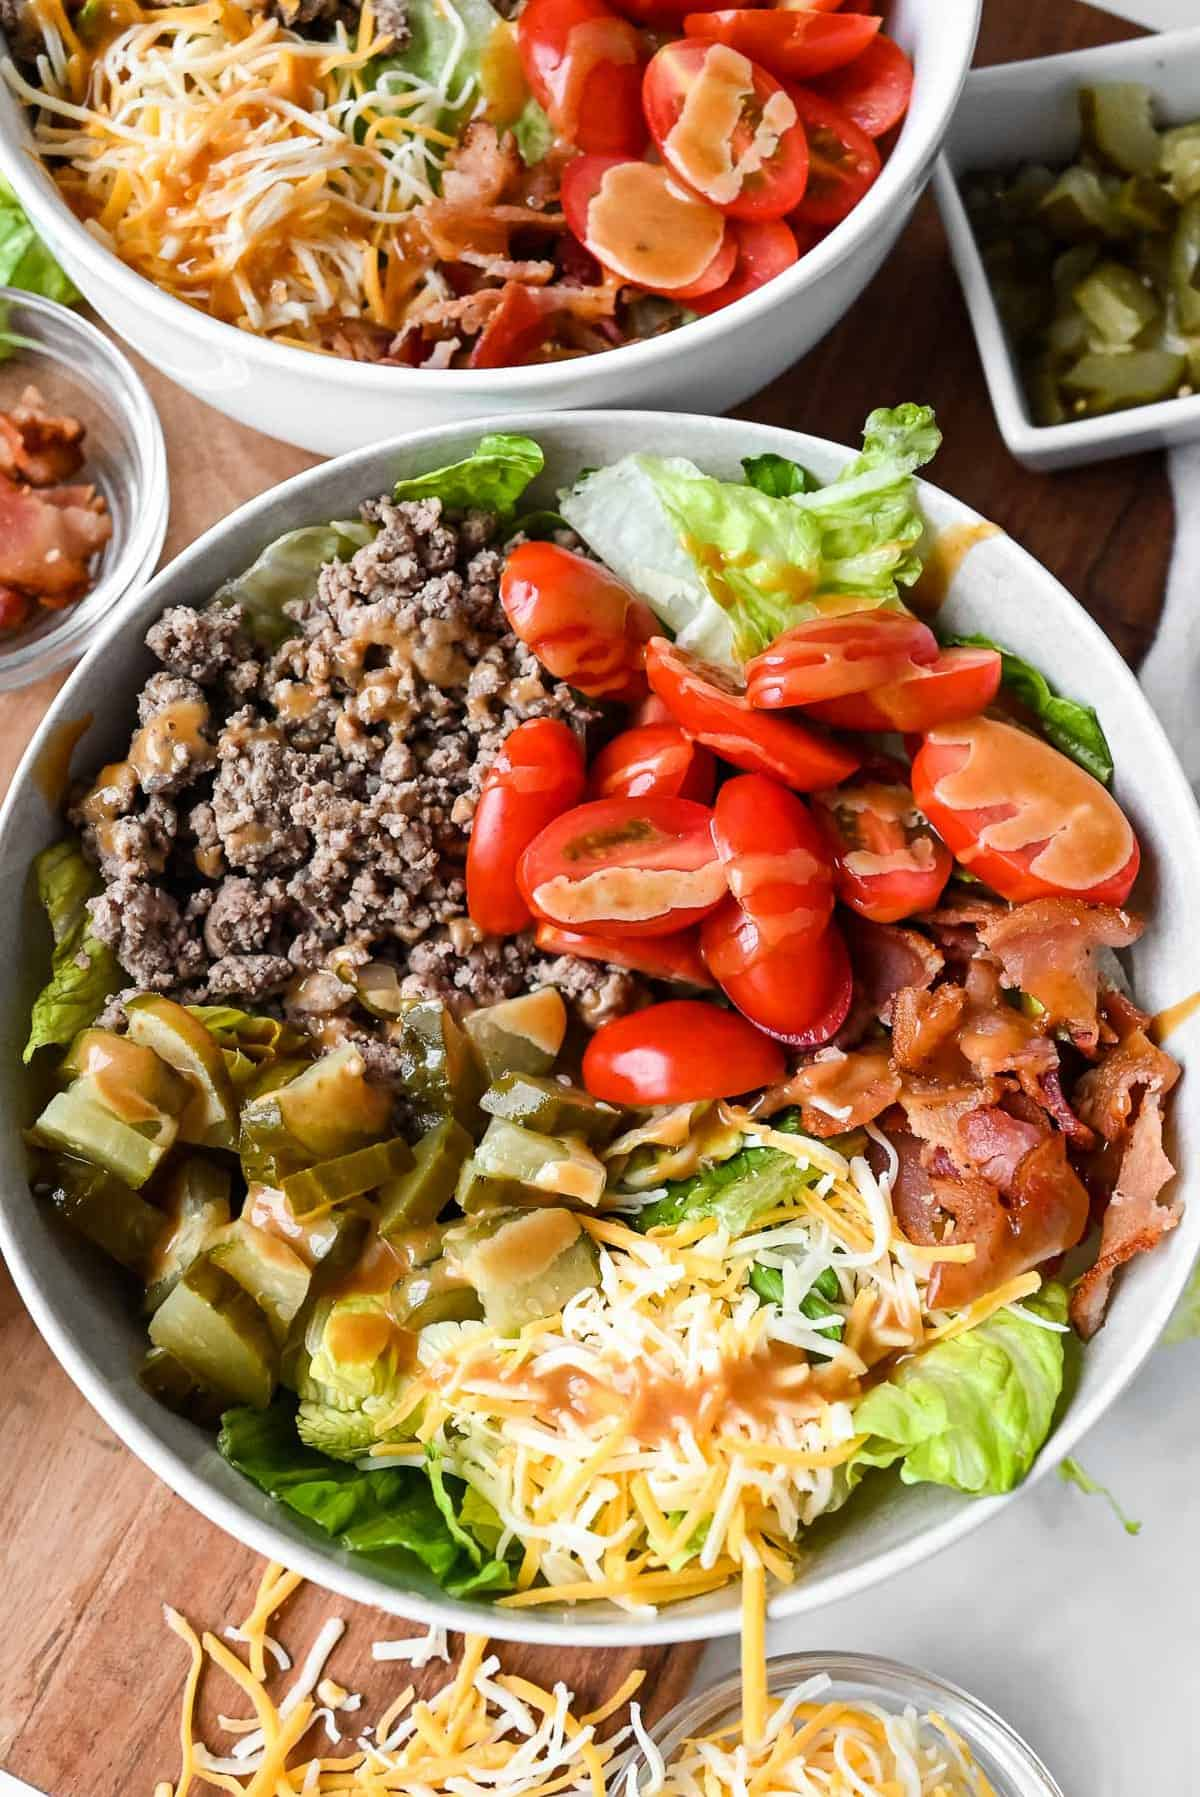 burger in a bowl with lettuce, bacon, tomatoes, cheese and special sauce